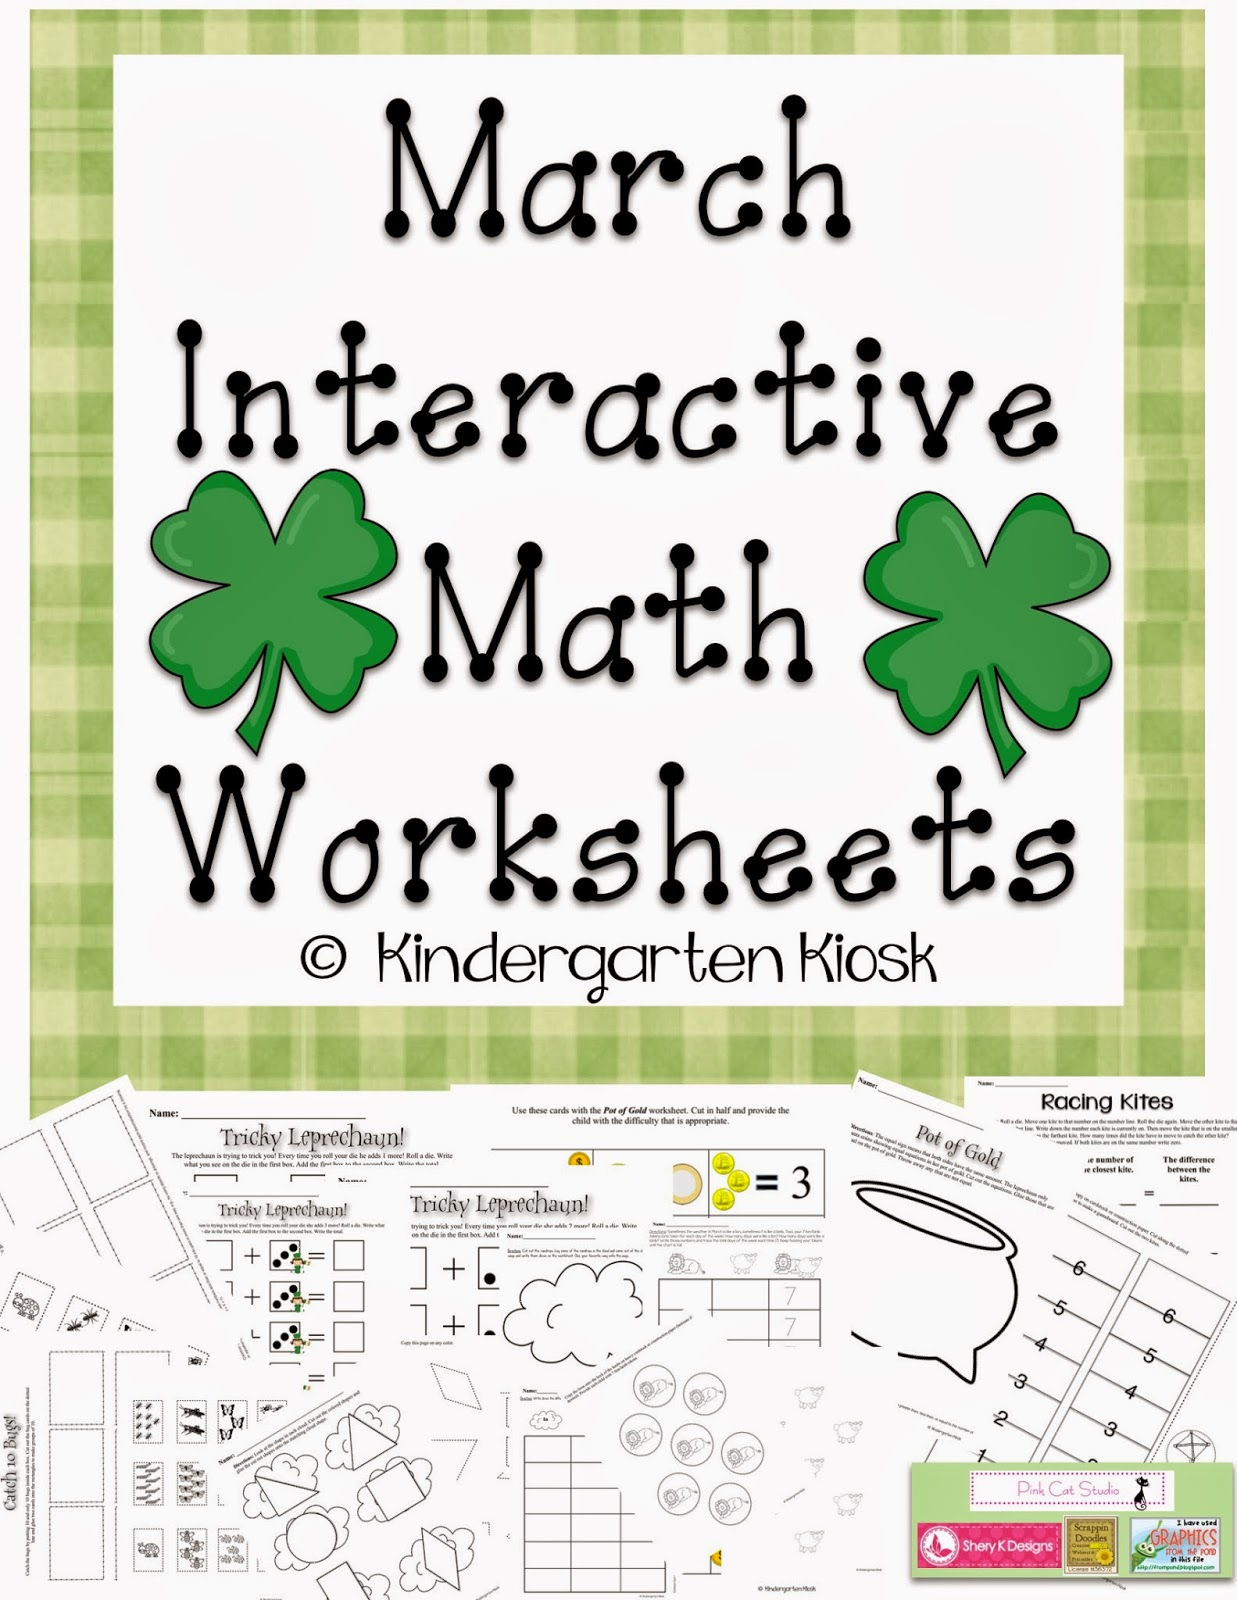 Kindergarten Kiosk March Math Worksheets